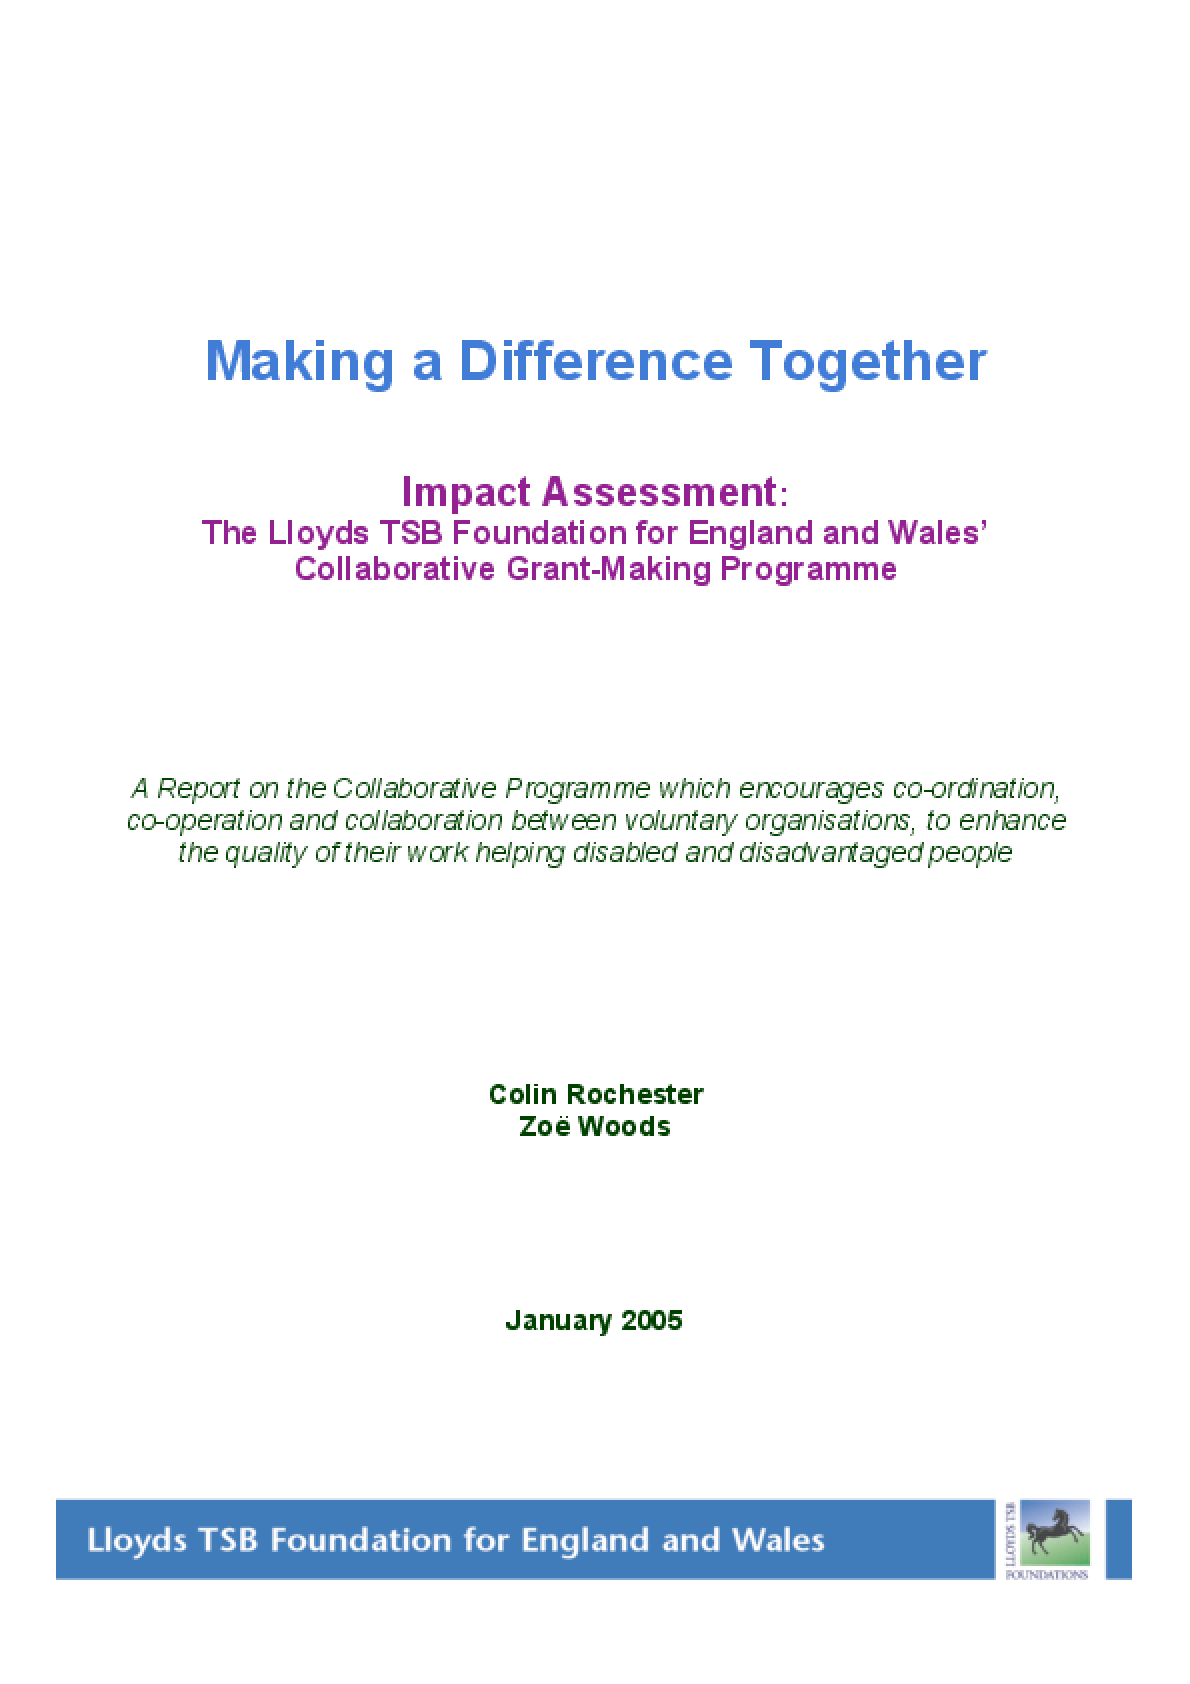 Making a Difference Together: Impact Assessment: The Lloyds TSB Foundation For England and Wales' Collaborative Grant-making Programme